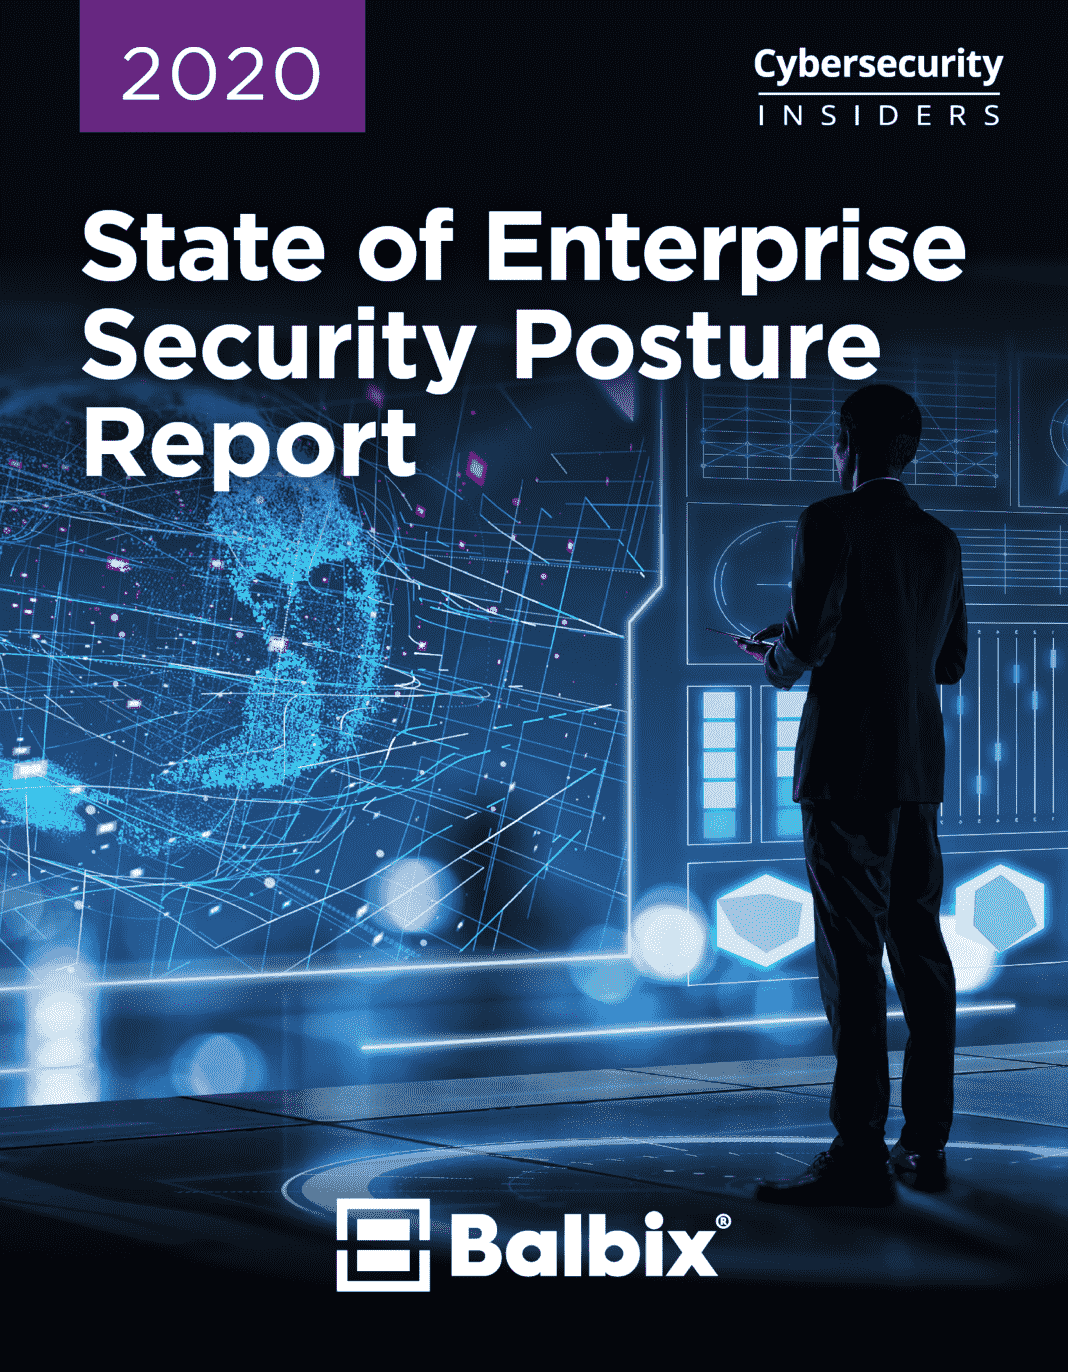 2020 State of Enterprise Security Posture Report